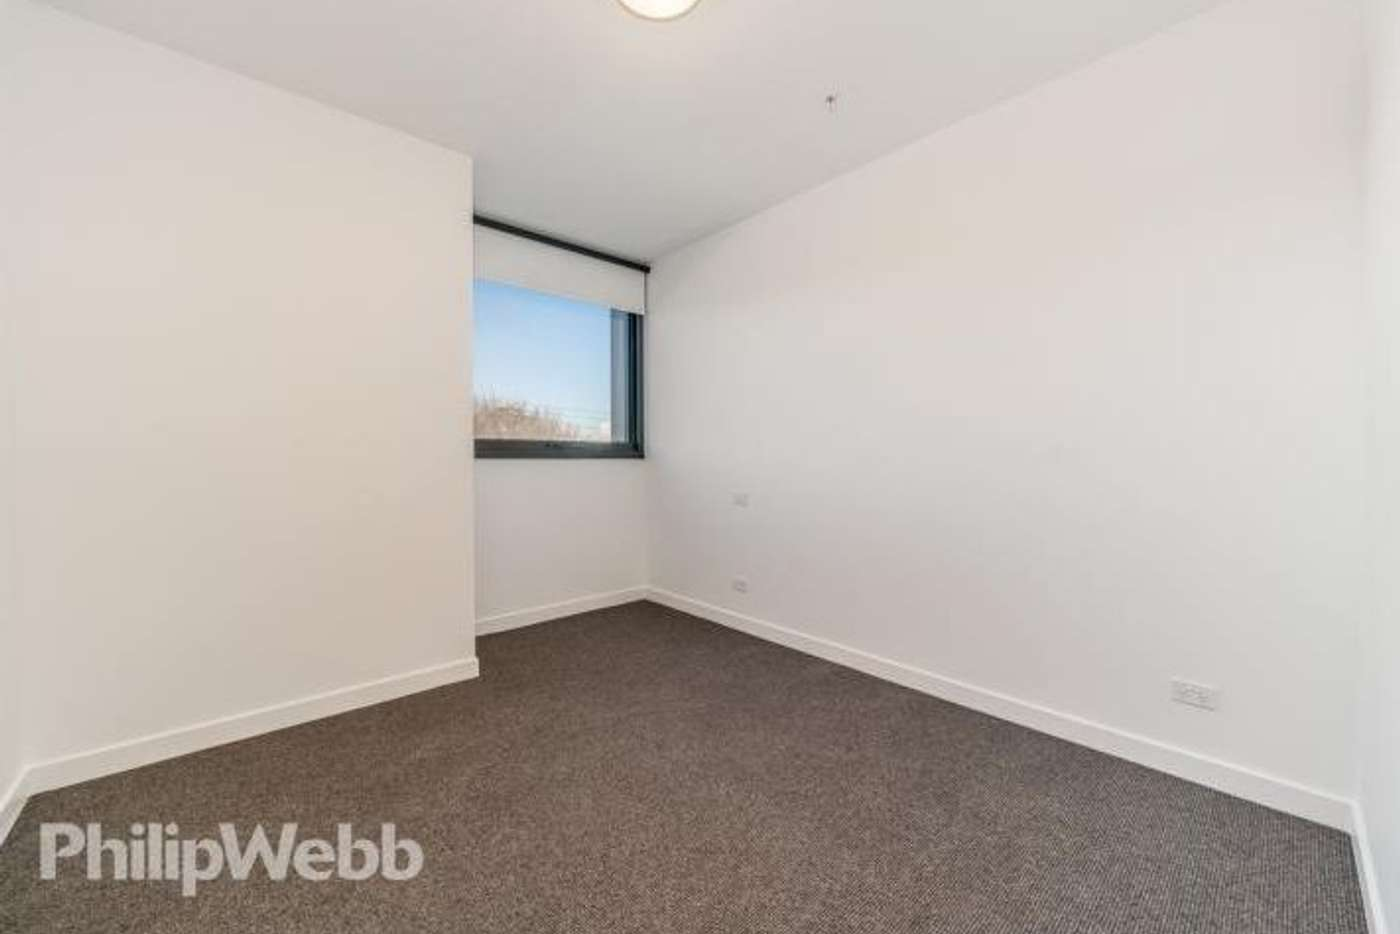 Seventh view of Homely apartment listing, 209/1 Pettys Lane, Doncaster VIC 3108